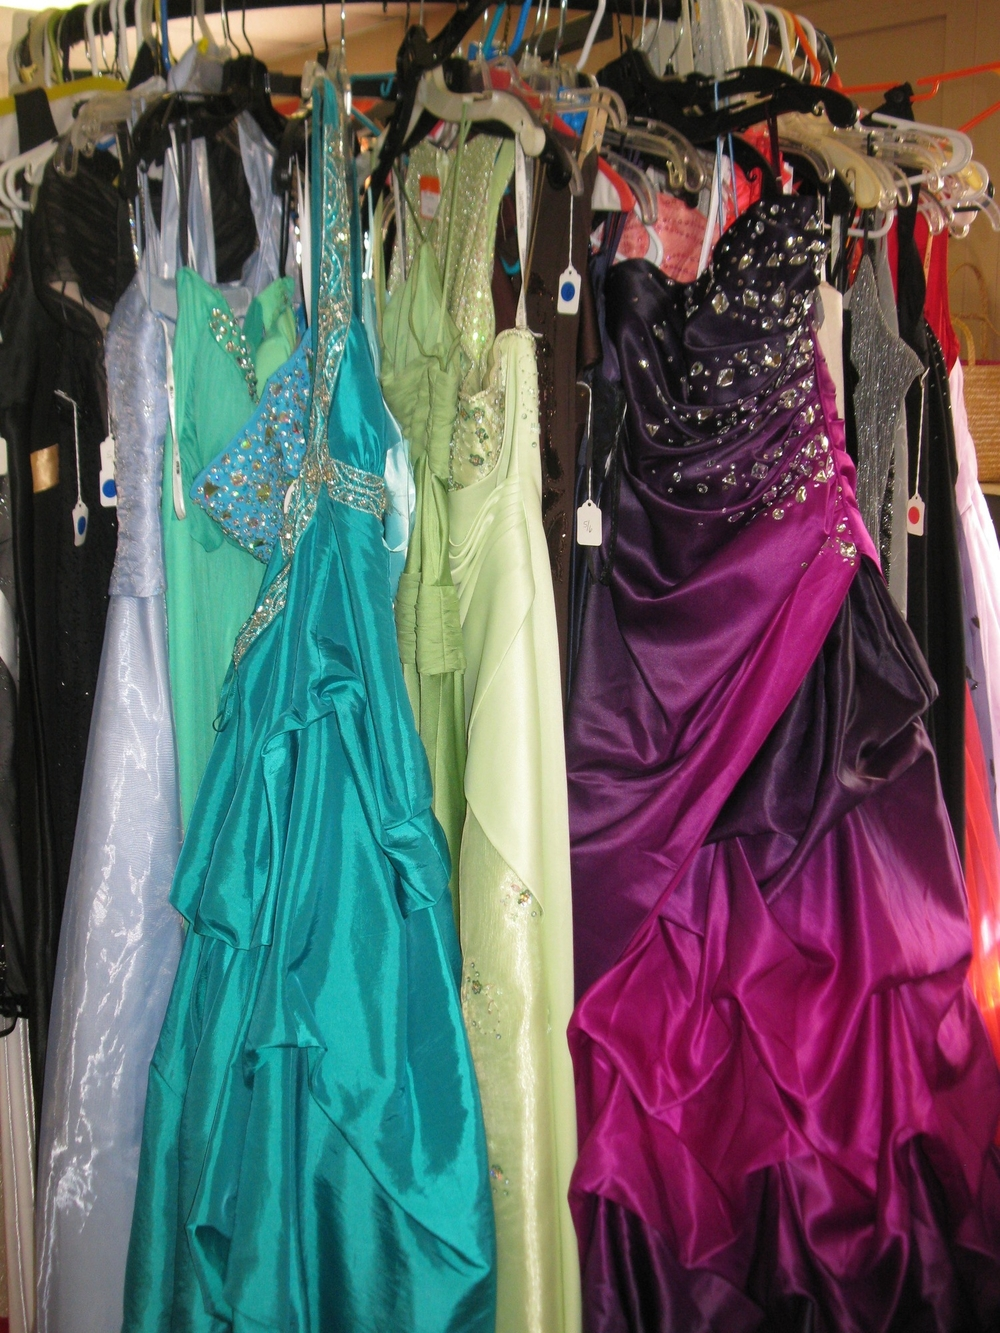 Prom Dresses to choose from.